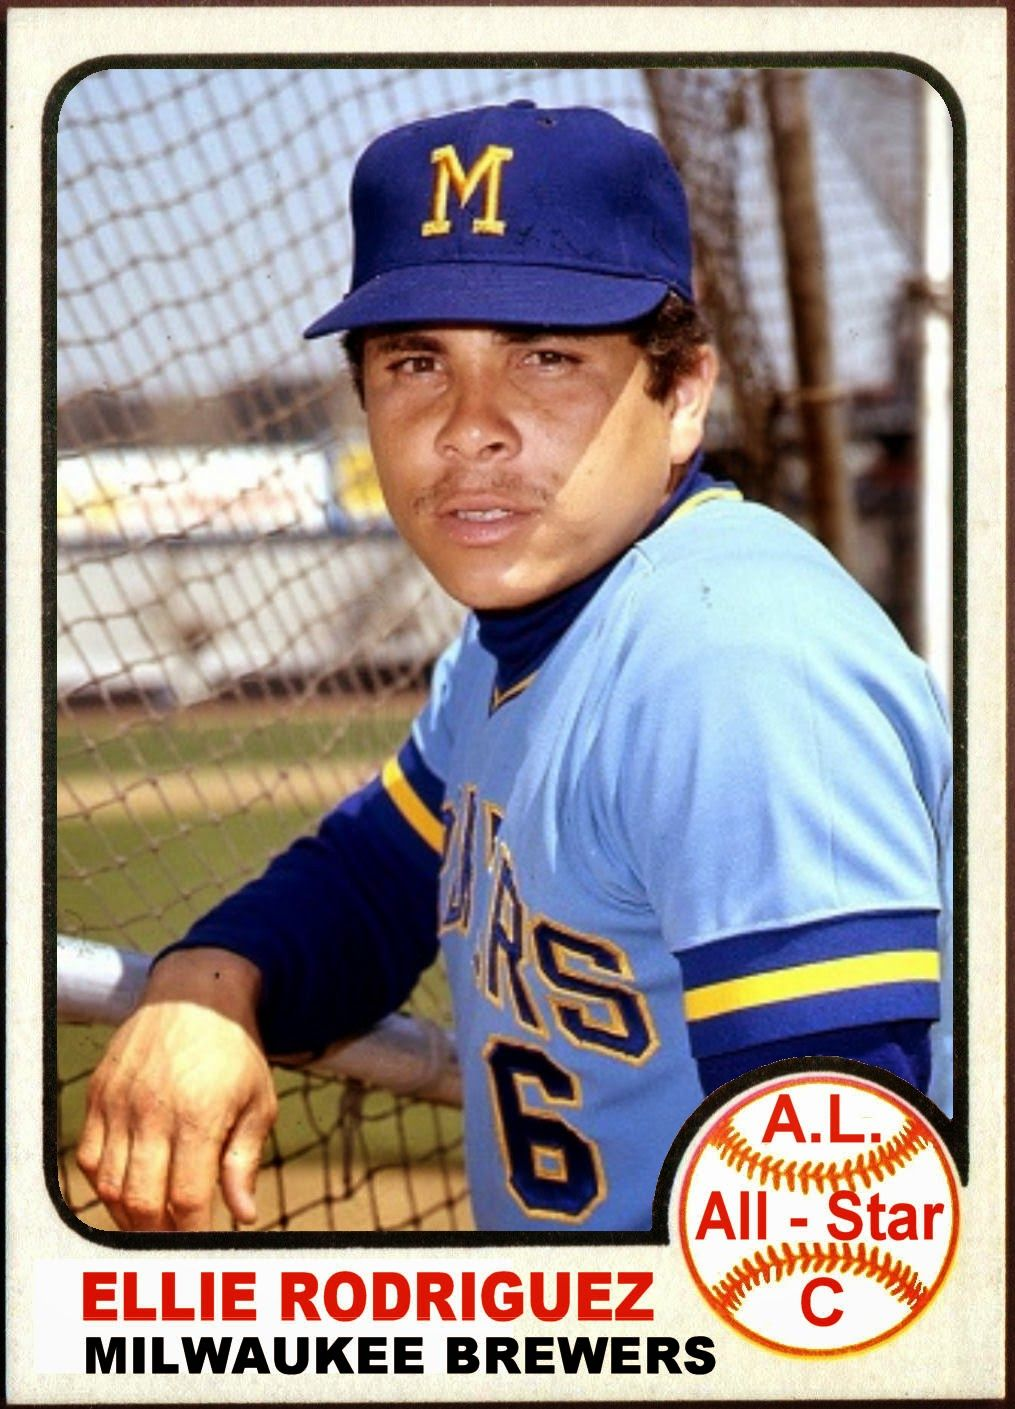 Pin by Billy jack laBarre on baseball cards that never